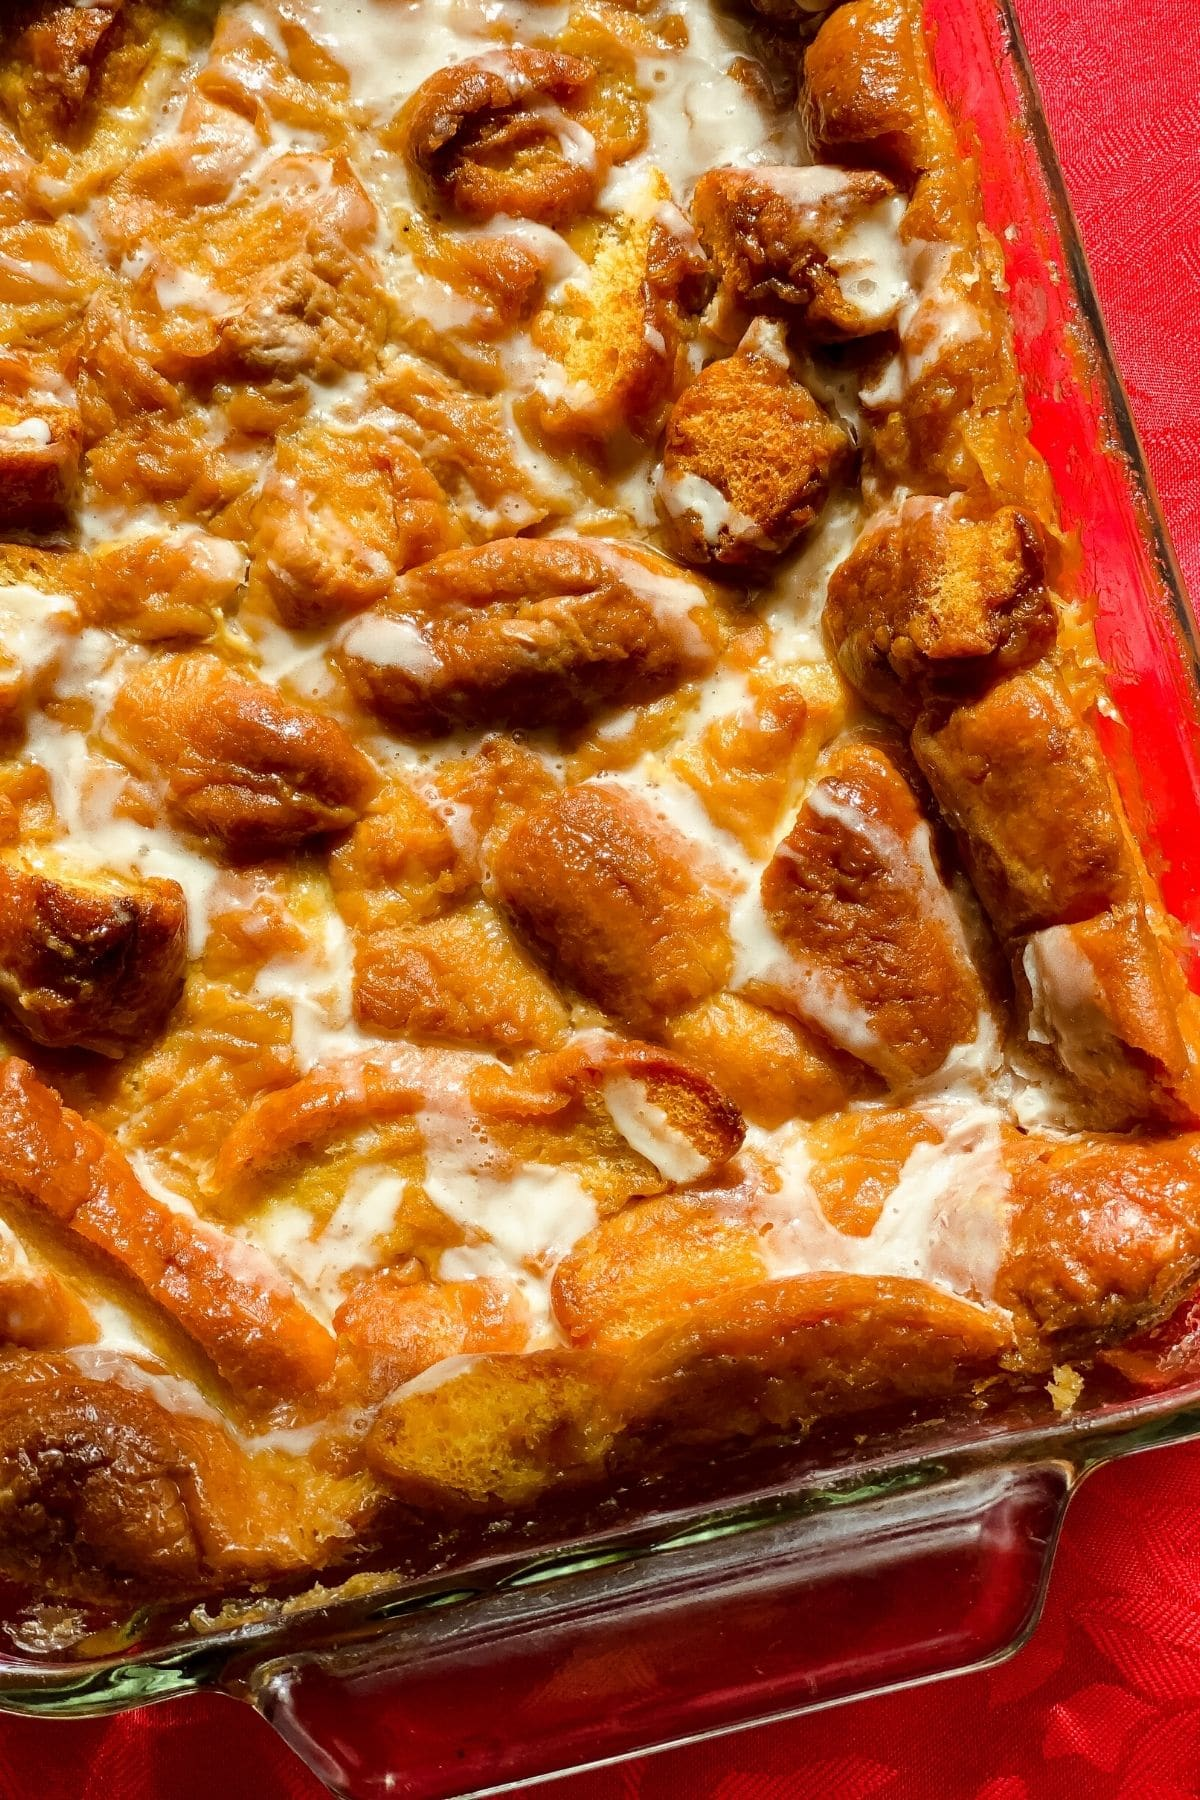 Krispy Kreme donut bread pudding in baking dish